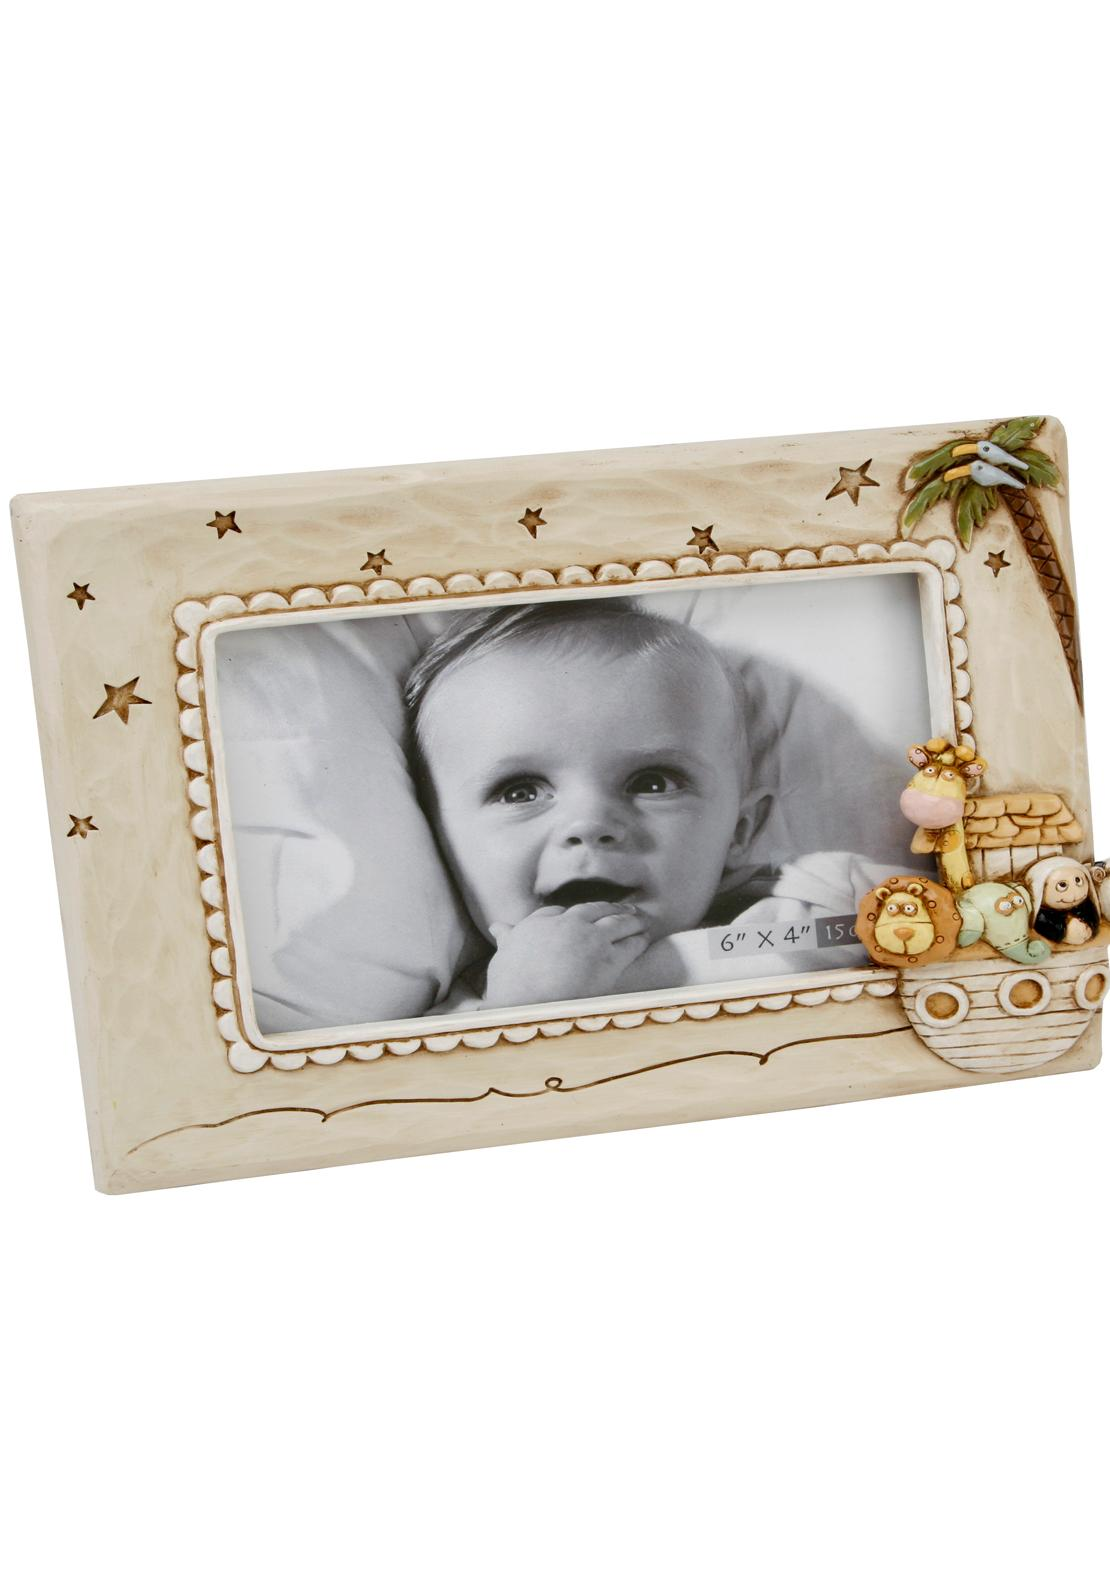 "Noah's Ark Baby Photo Frame 6"" X 4\"""